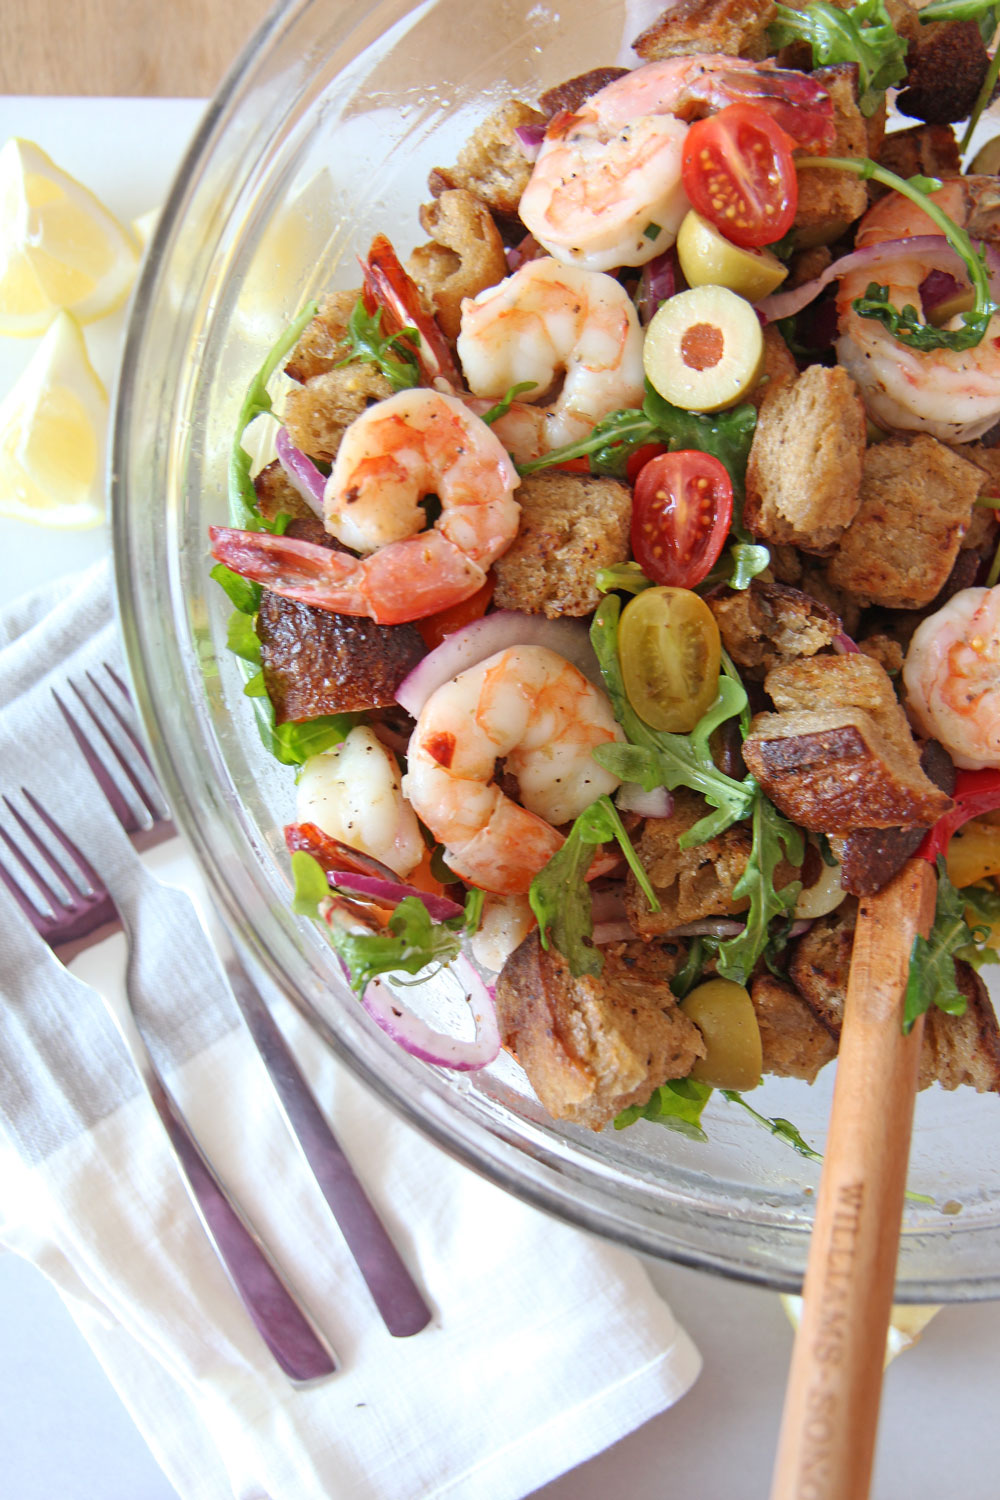 Shrimp and Garlic Bread Panzanella Salad. Grab day old sourdough bread, butter, juicy sheet pan shrimp, sweet tomatoes, and peppery arugula. This is the perfect salad for a crowd or healthy dinner. Happy Coking! www.ChopHappy.com #PanzanellaSalad #saladrecipe